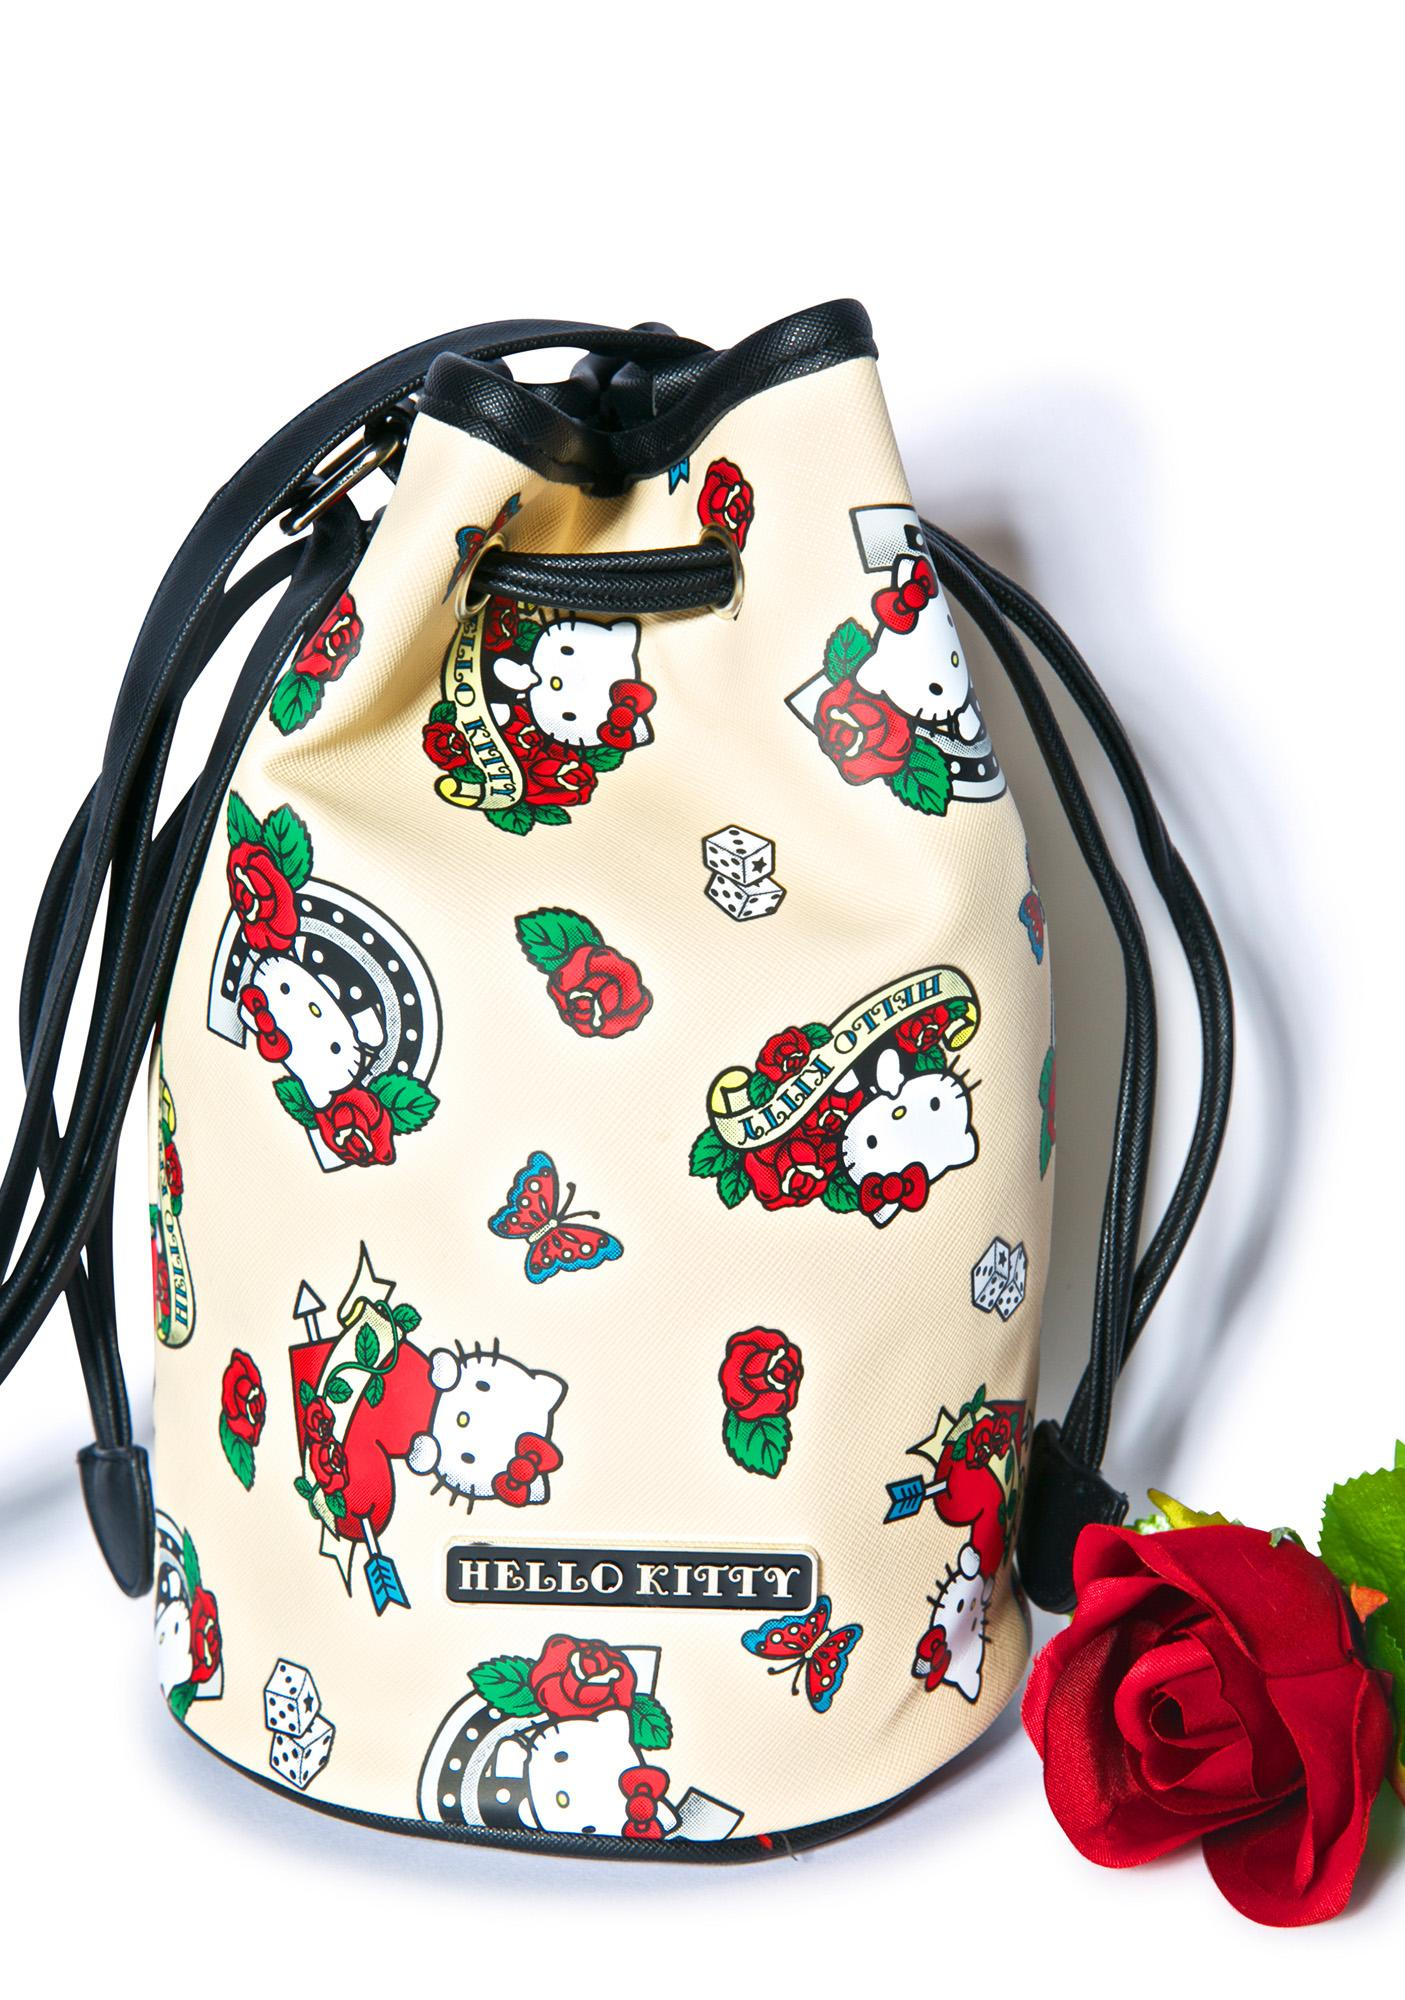 dac67d8d8 Sanrio Hello Kitty Bucket Bag | Dolls Kill